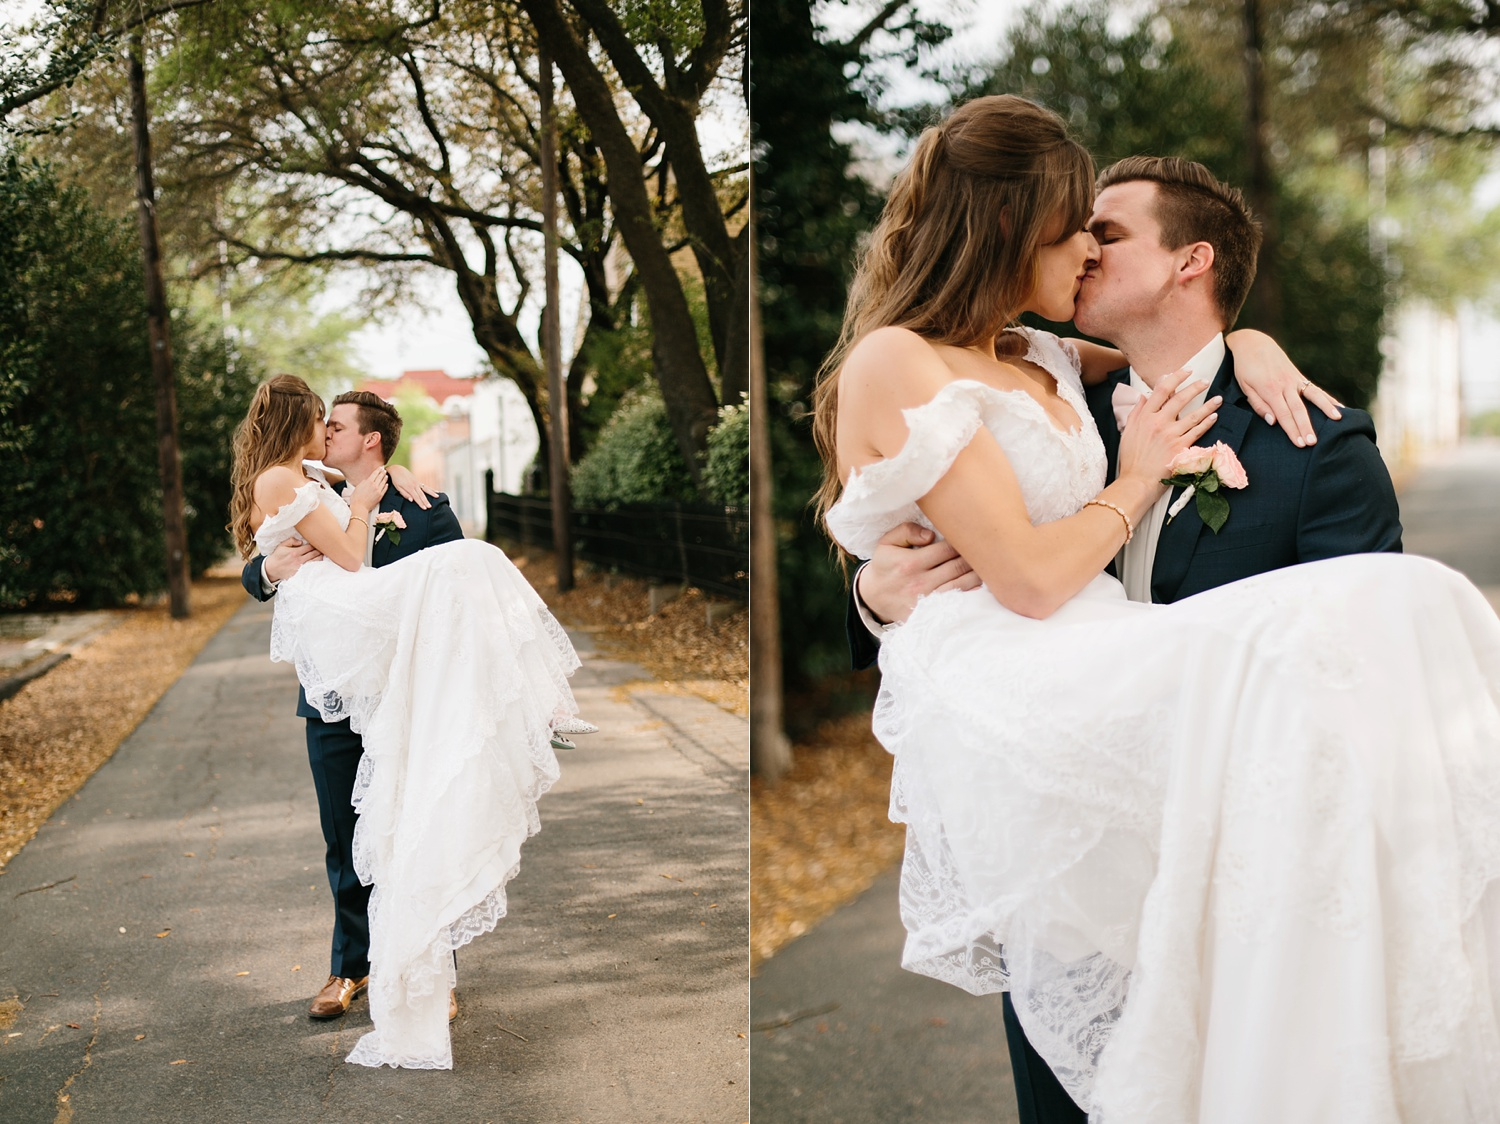 Amber + Daniel an intimate, simple, spring ceremony at Heard Craig Center and reception at Gather in McKinney, Texas by North Texas Wedding Photographer Rachel Meagan Photography 097